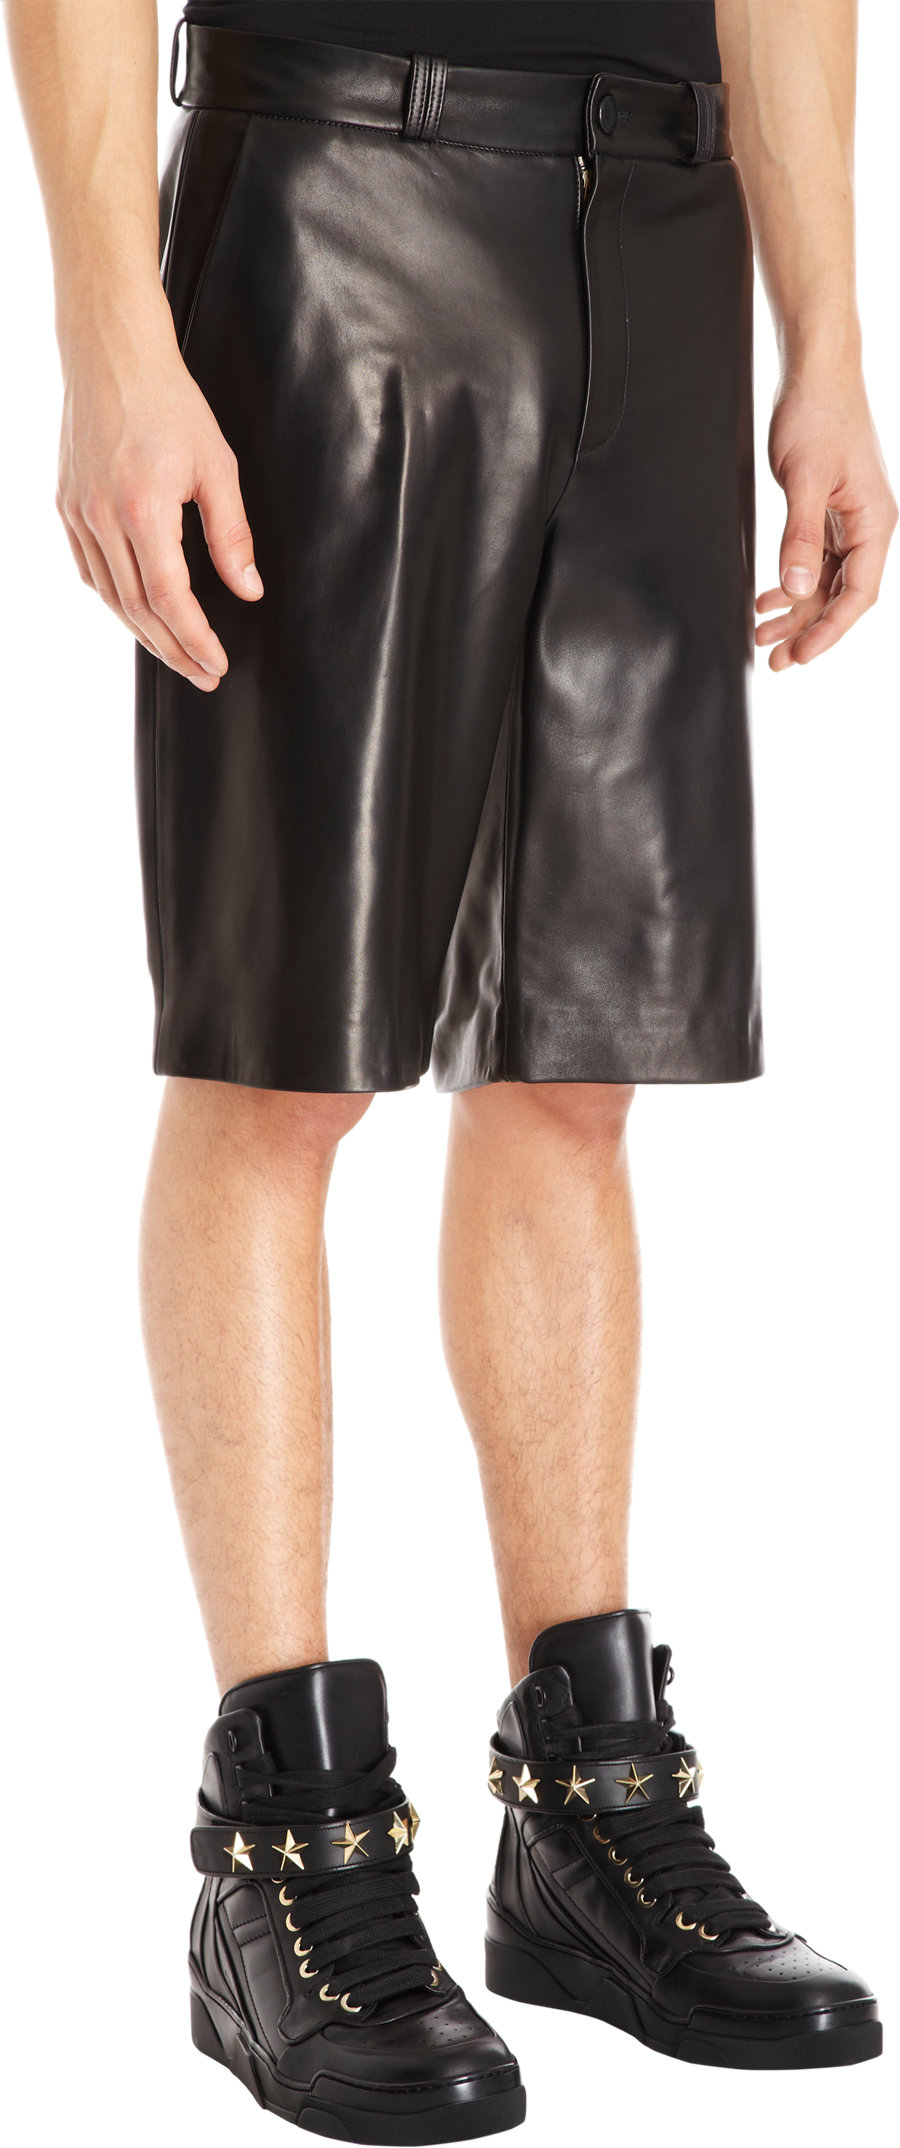 lyst  givenchy leather bermuda shorts in black for men